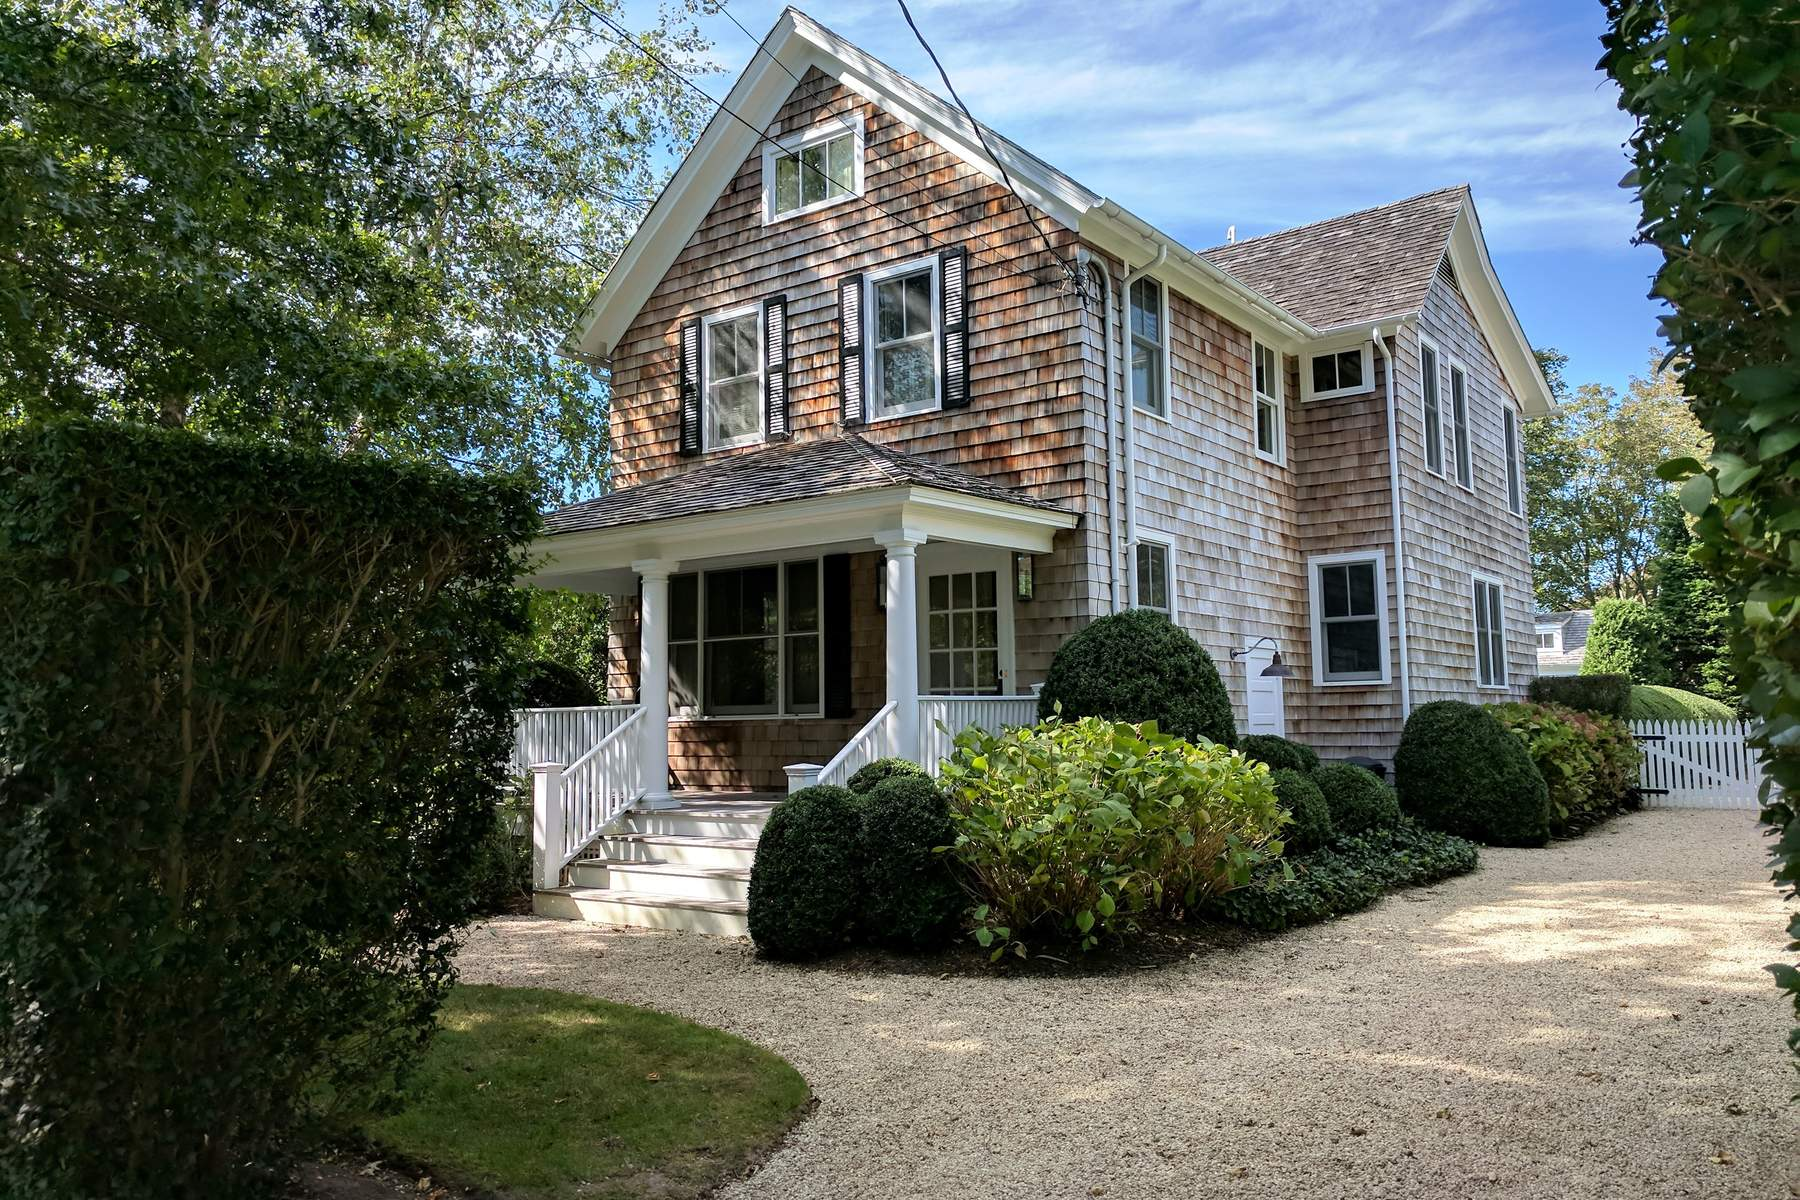 Single Family Home for Rent at Lovely Renovated Village Home w/Pool 47 Layton Avenue Southampton, New York 11968 United States